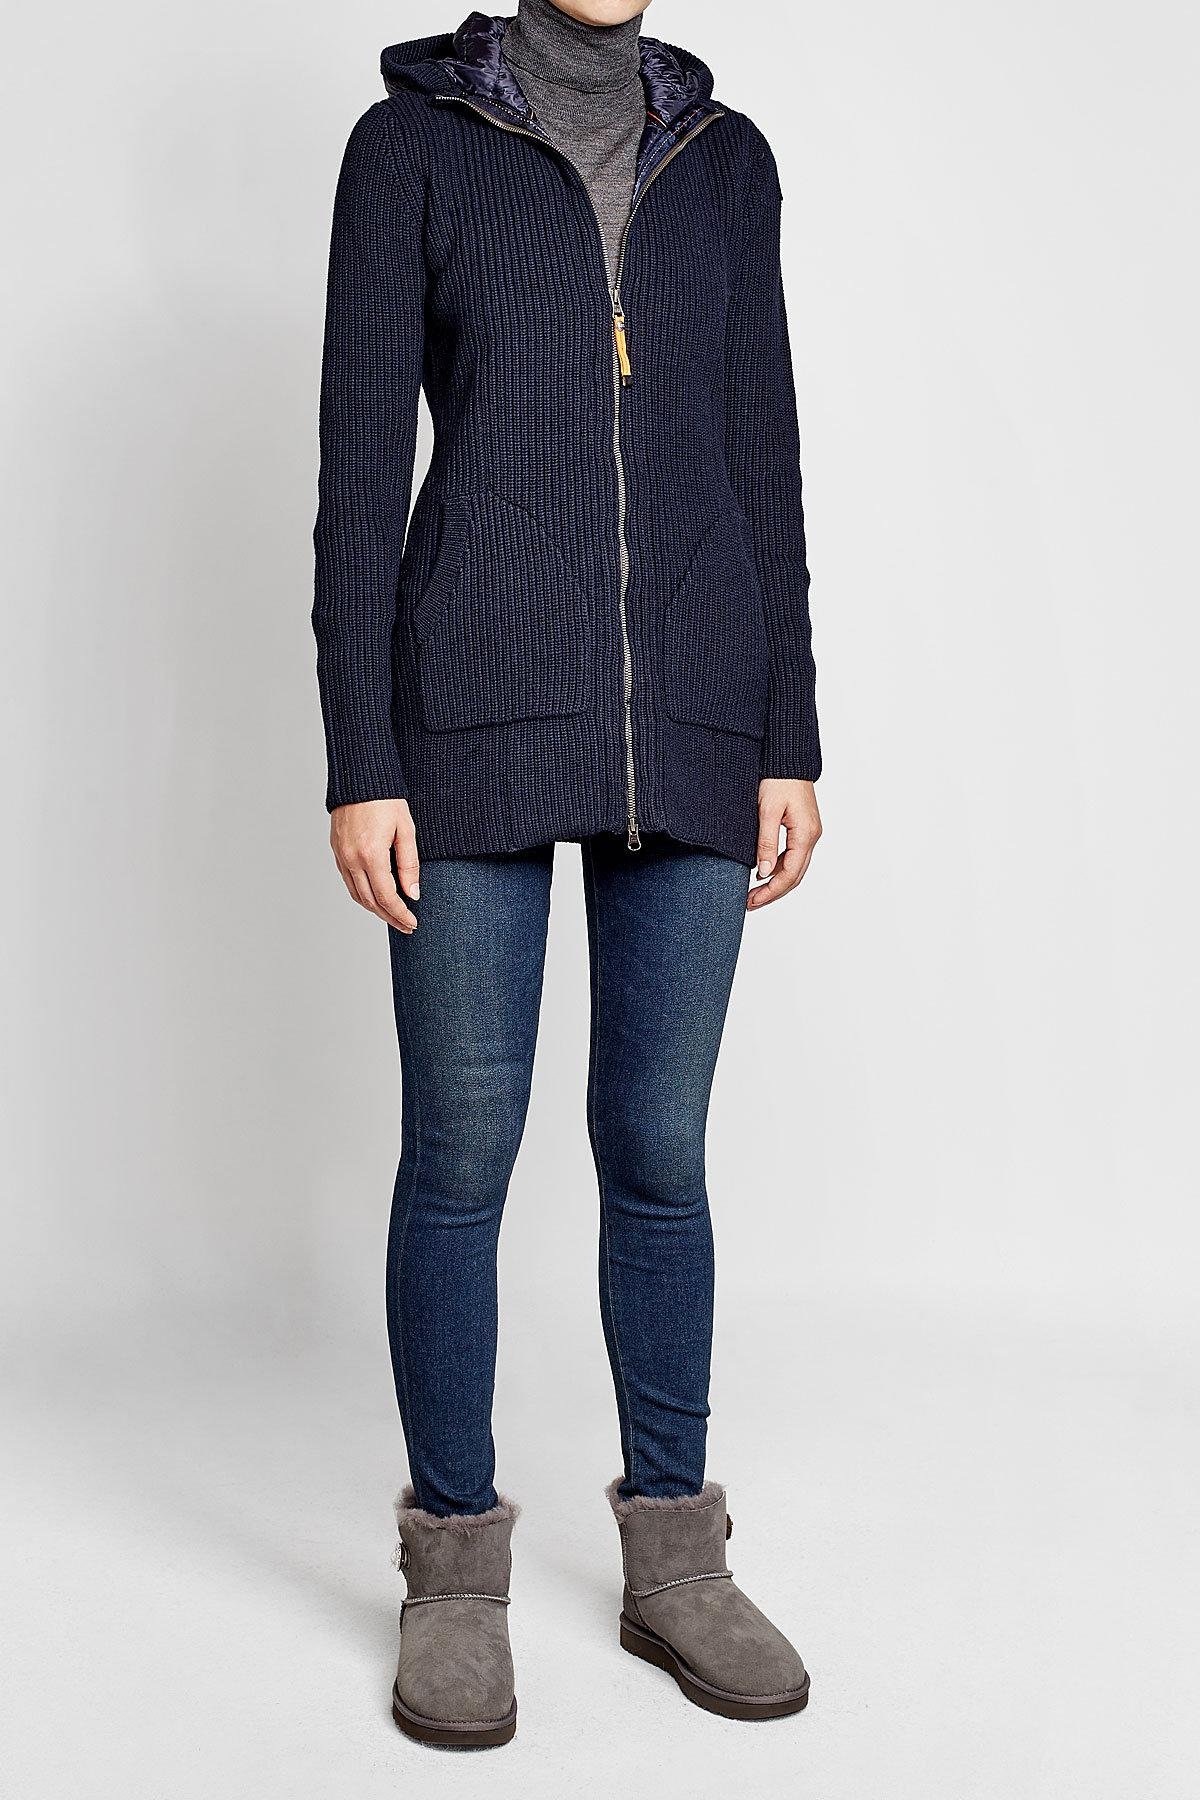 The North Face Sweater Jacket